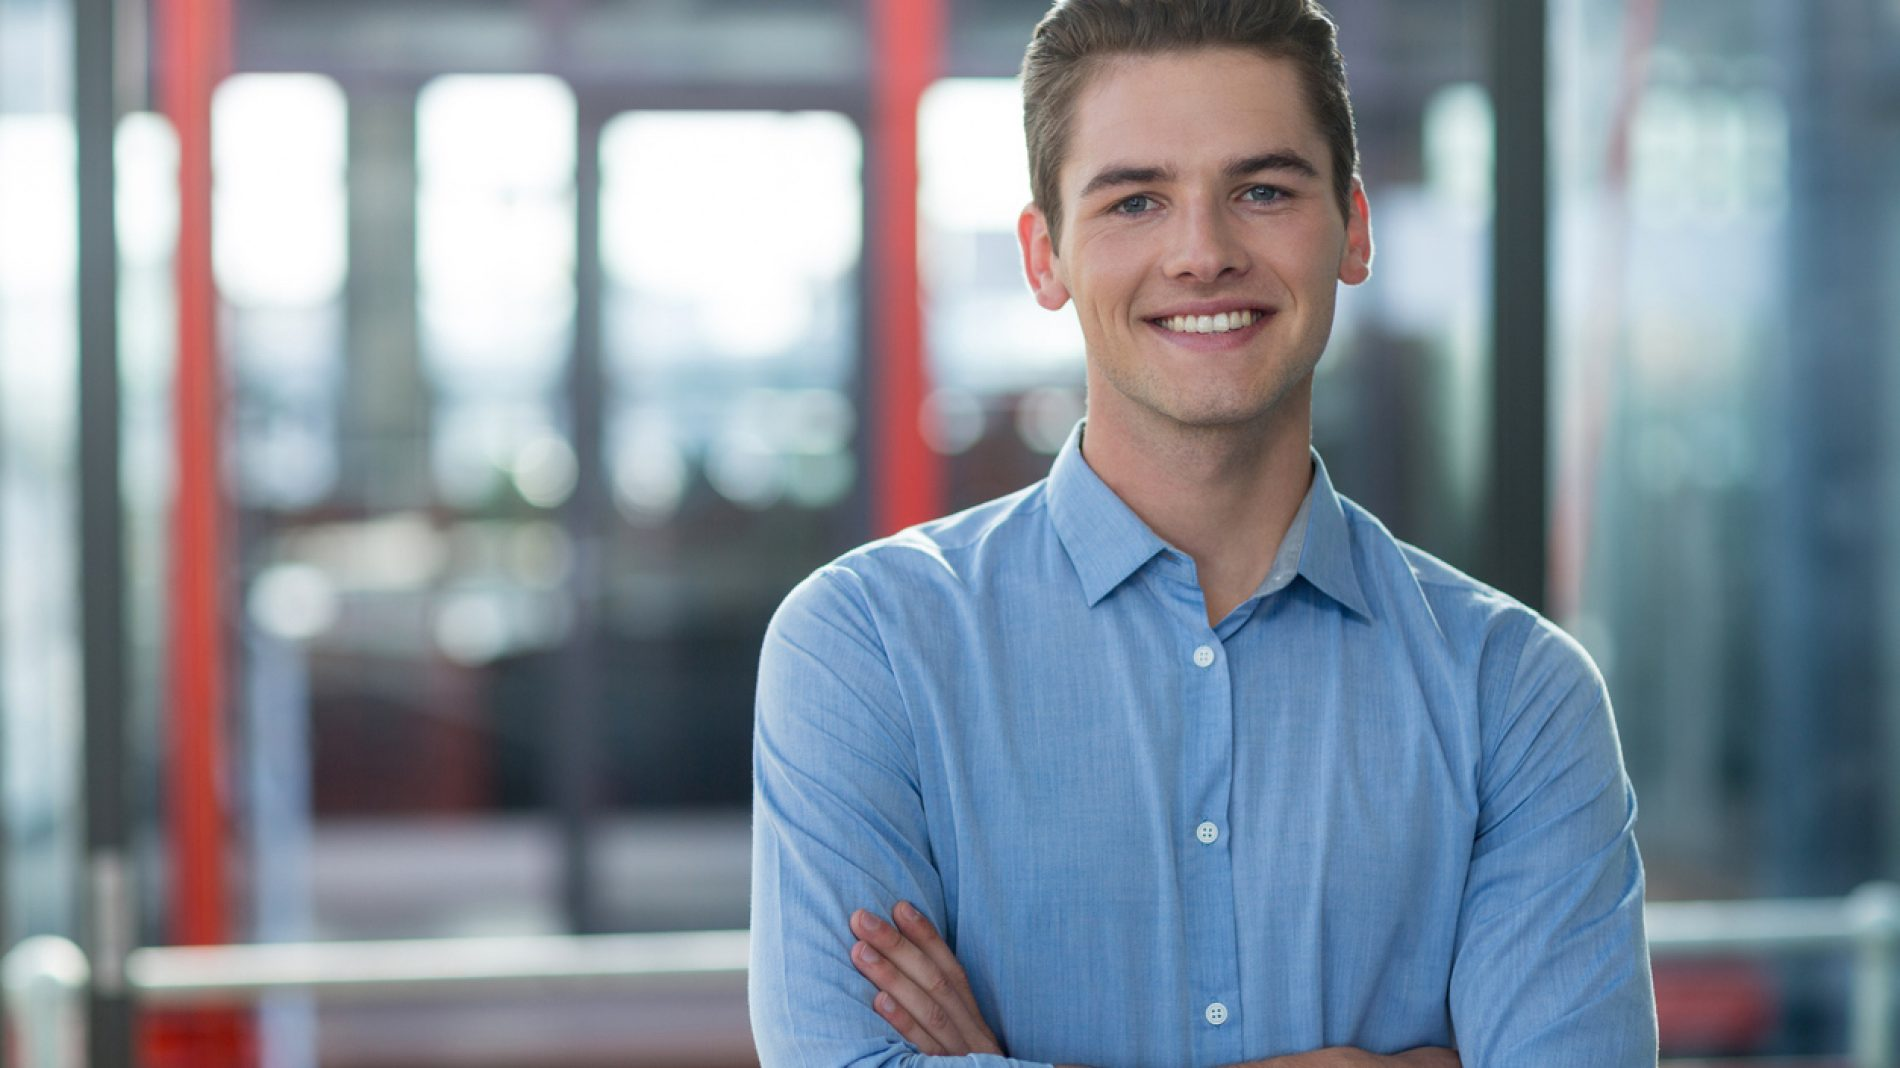 Business executive standing with arms crossed in office